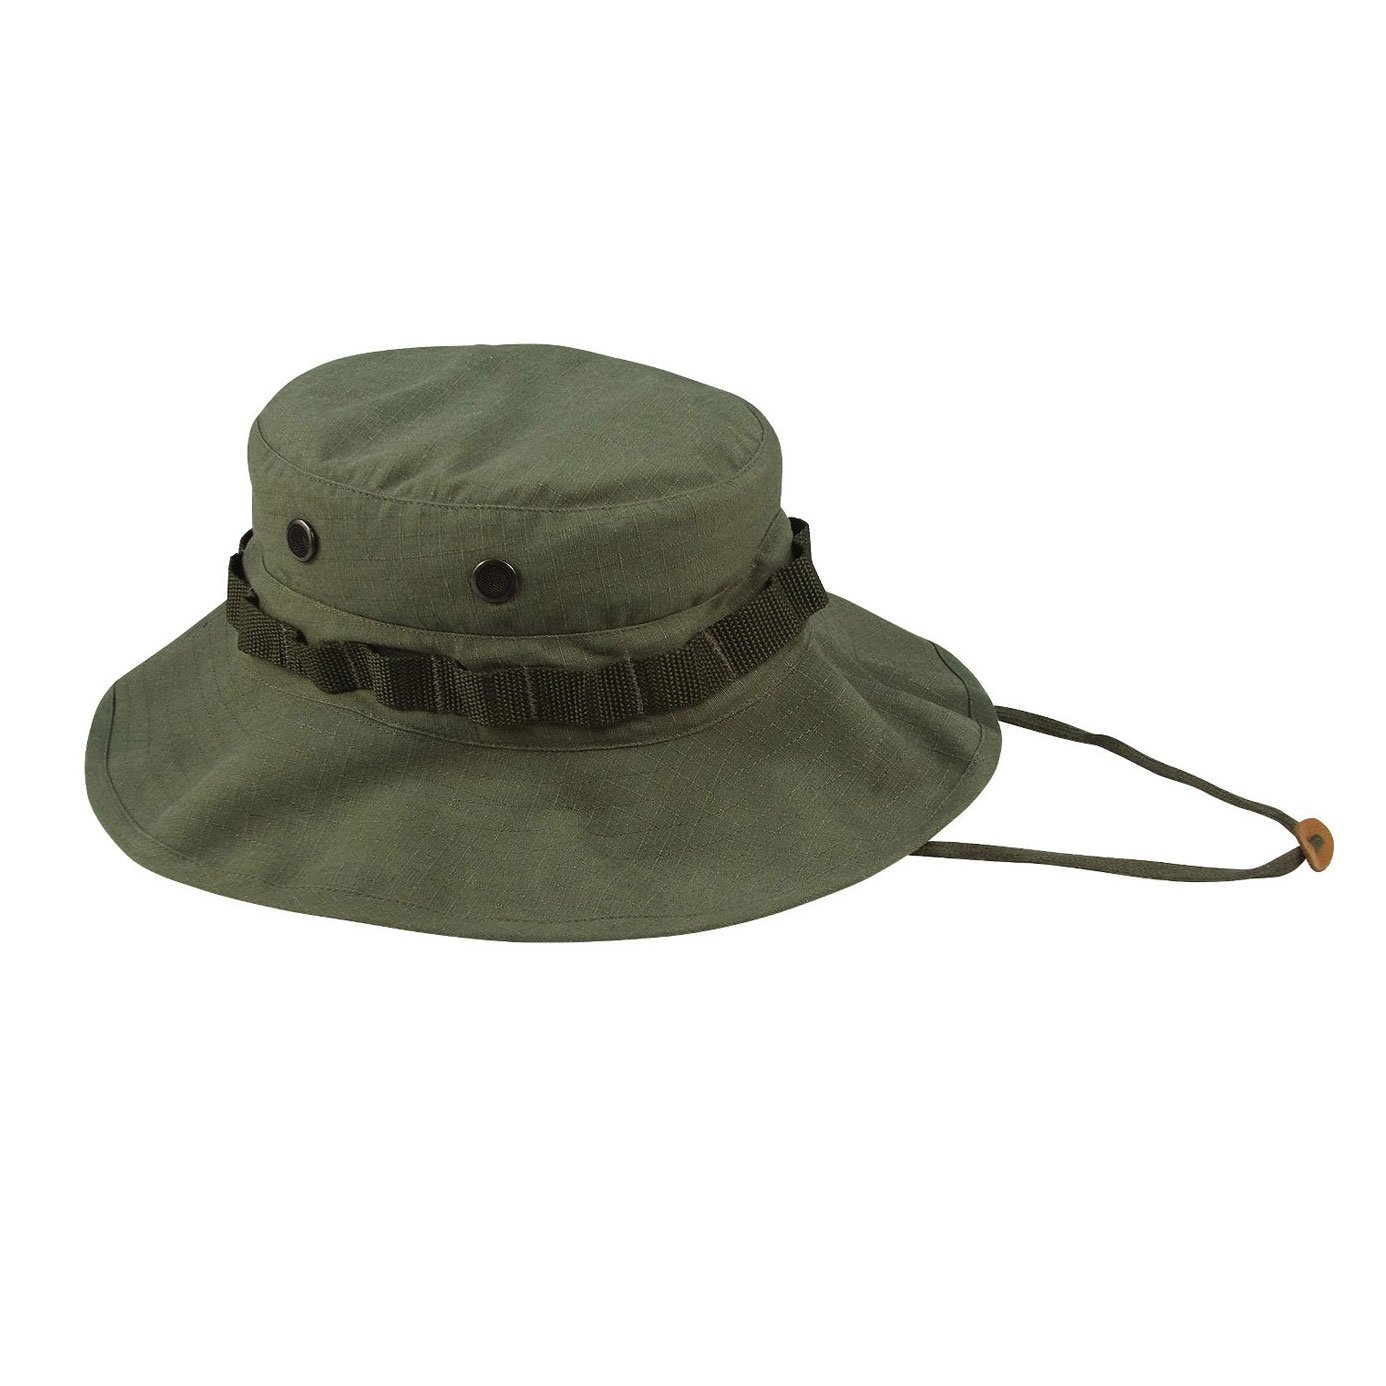 Amazon.com  Rothco Vintage Vietnam Style Boonie Hat  Sports   Outdoors 37c27ebde00